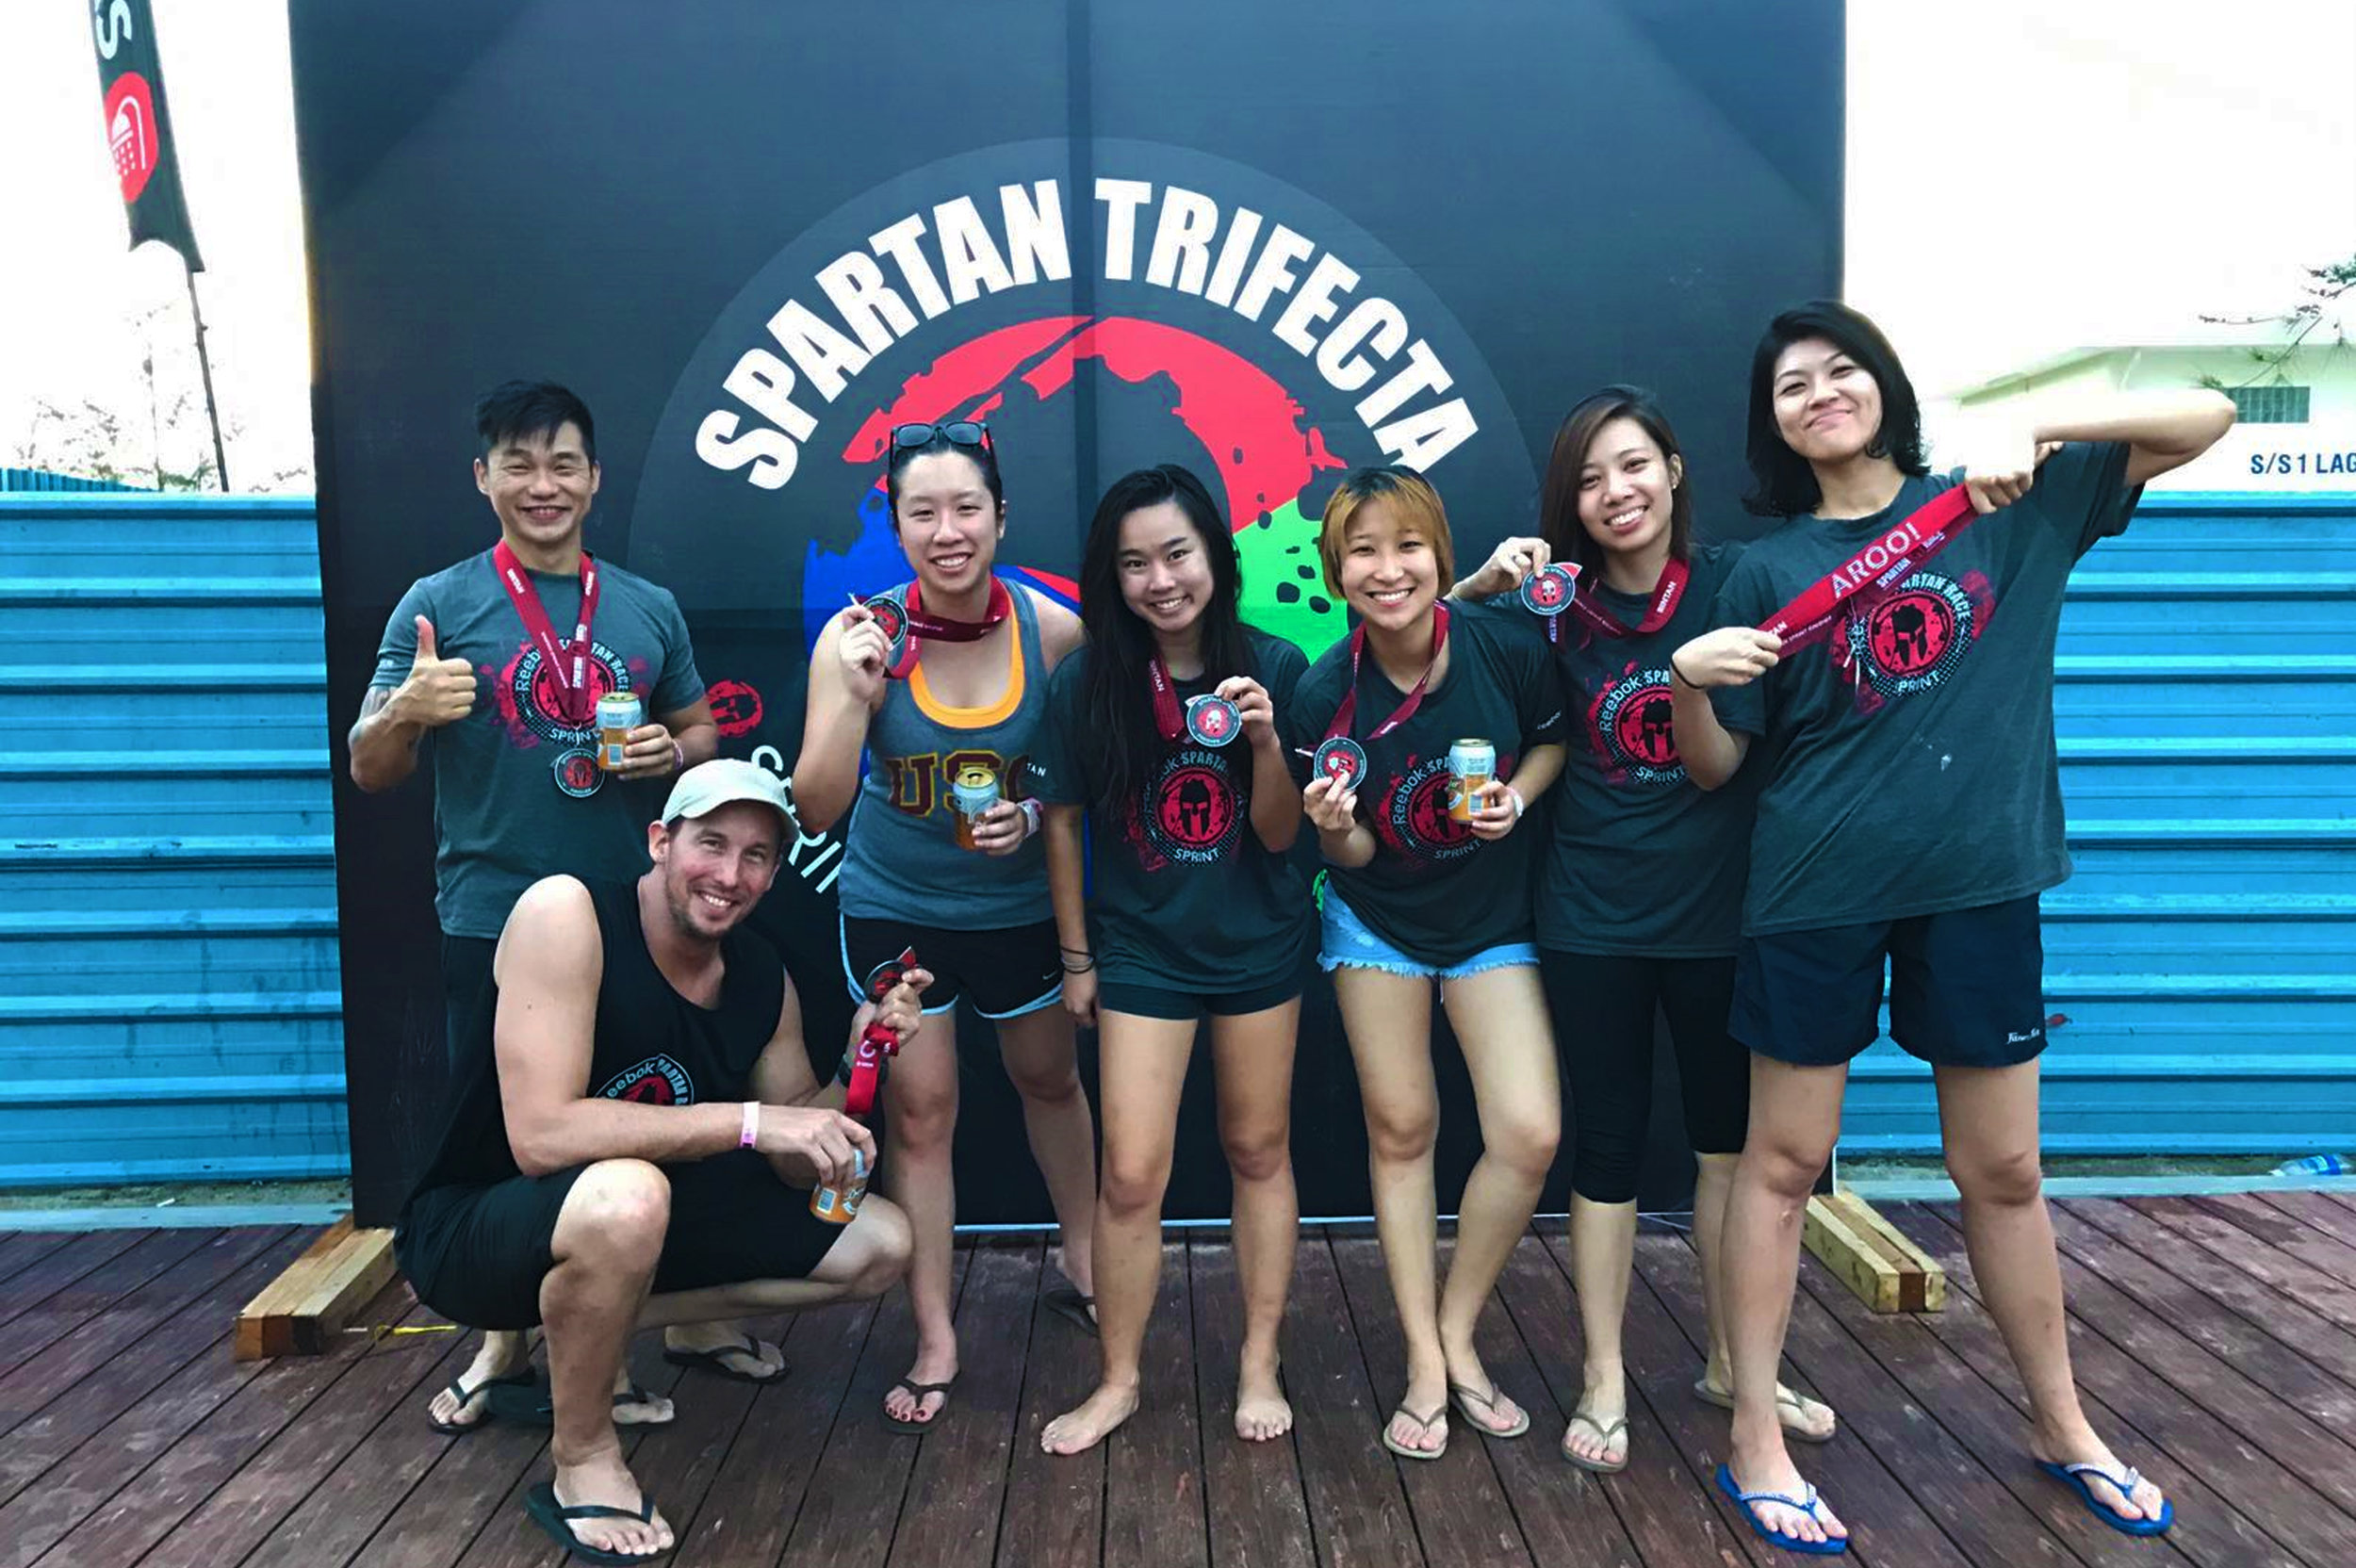 Team POSSIBLE Spartan finishers!